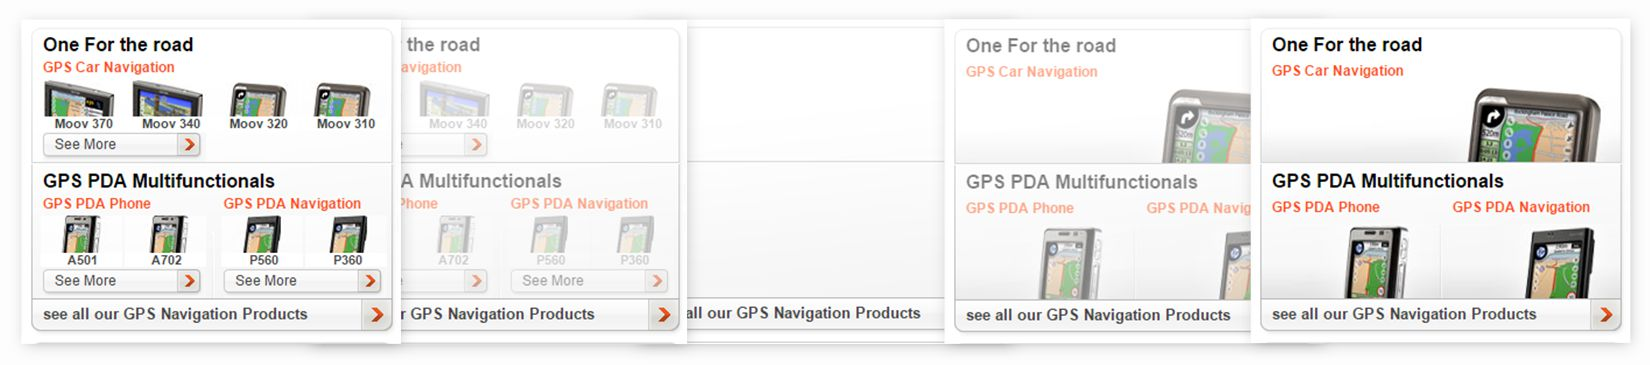 Mio Technology - homepage GPS selection initialization